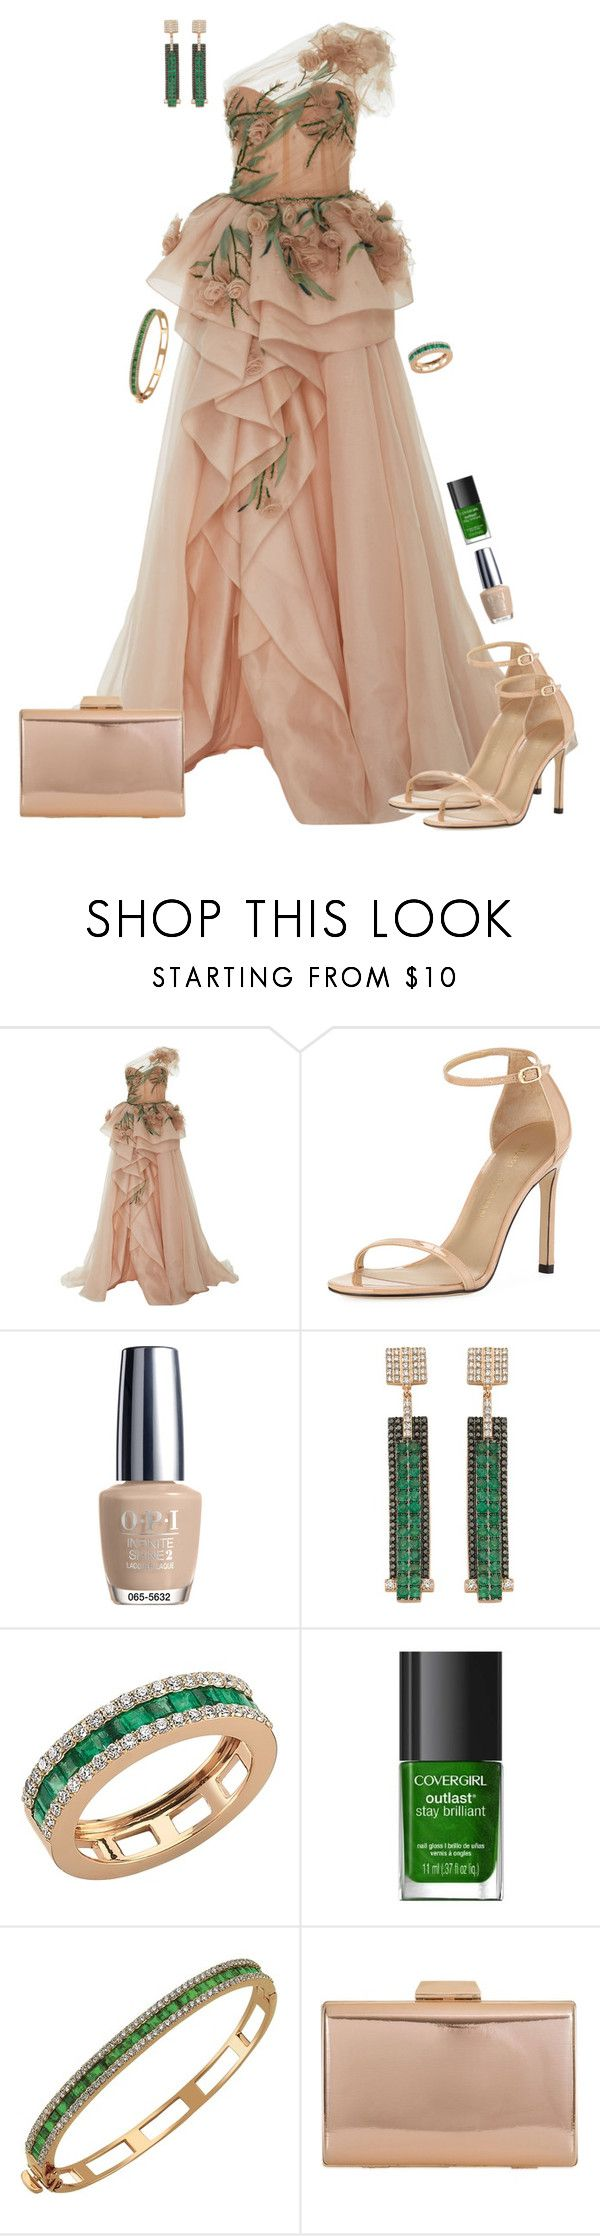 """""""Pastel Maxi Dress or Maxi Skirt"""" by dazzlious ❤ liked on Polyvore featuring Stuart Weitzman, OPI, Bee Goddess, COVERGIRL, KoKo Couture, Oscars, dress, Elegant, pastel and evening"""